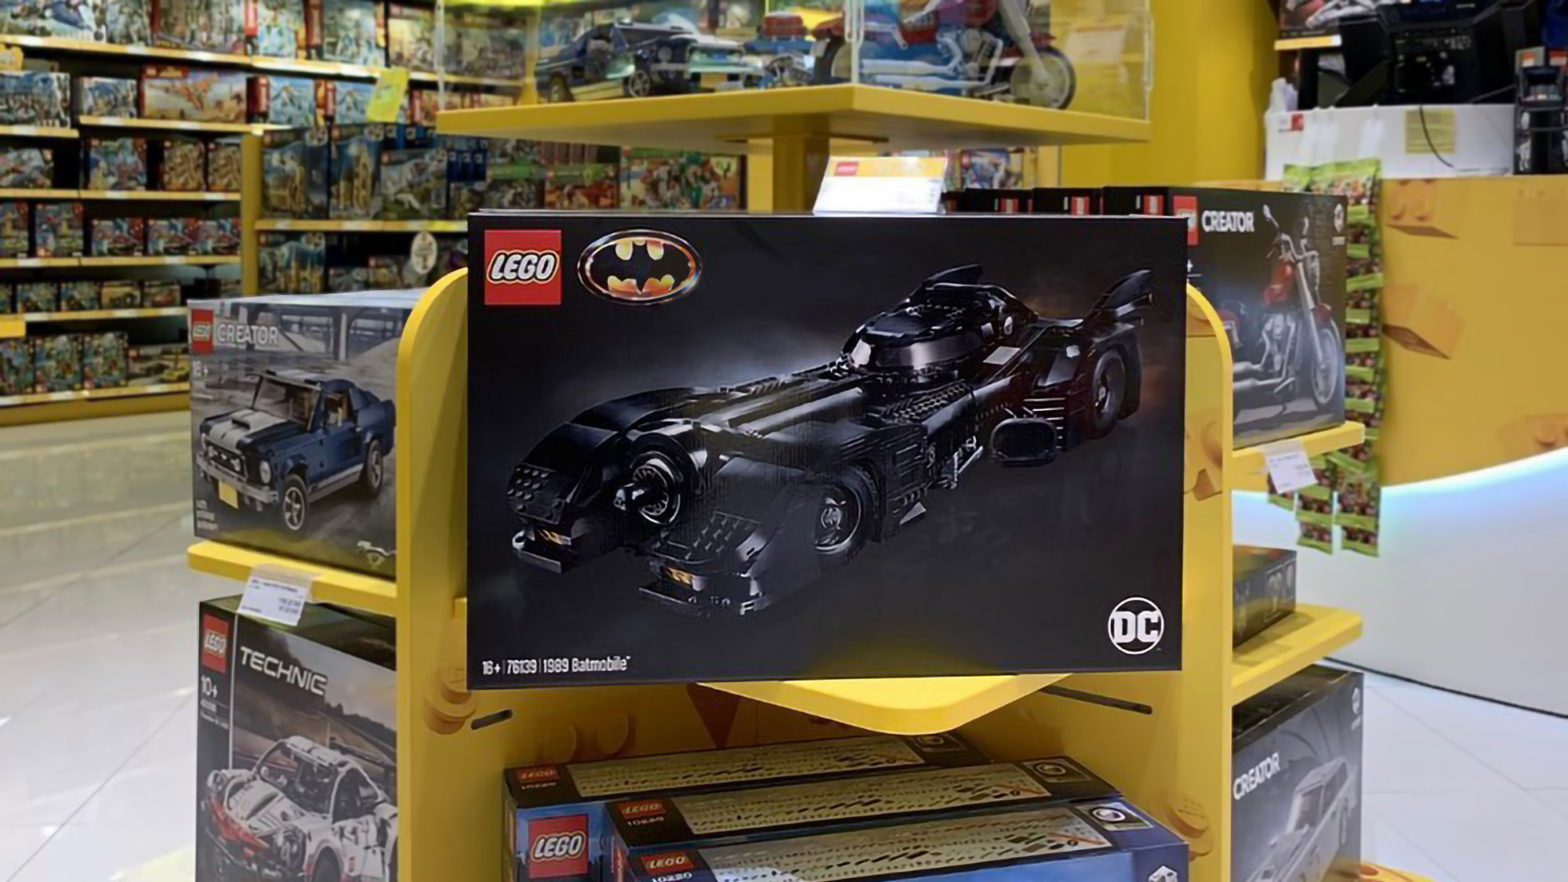 LEGO 76139 UCS 1989 Batmobile Billund Airport